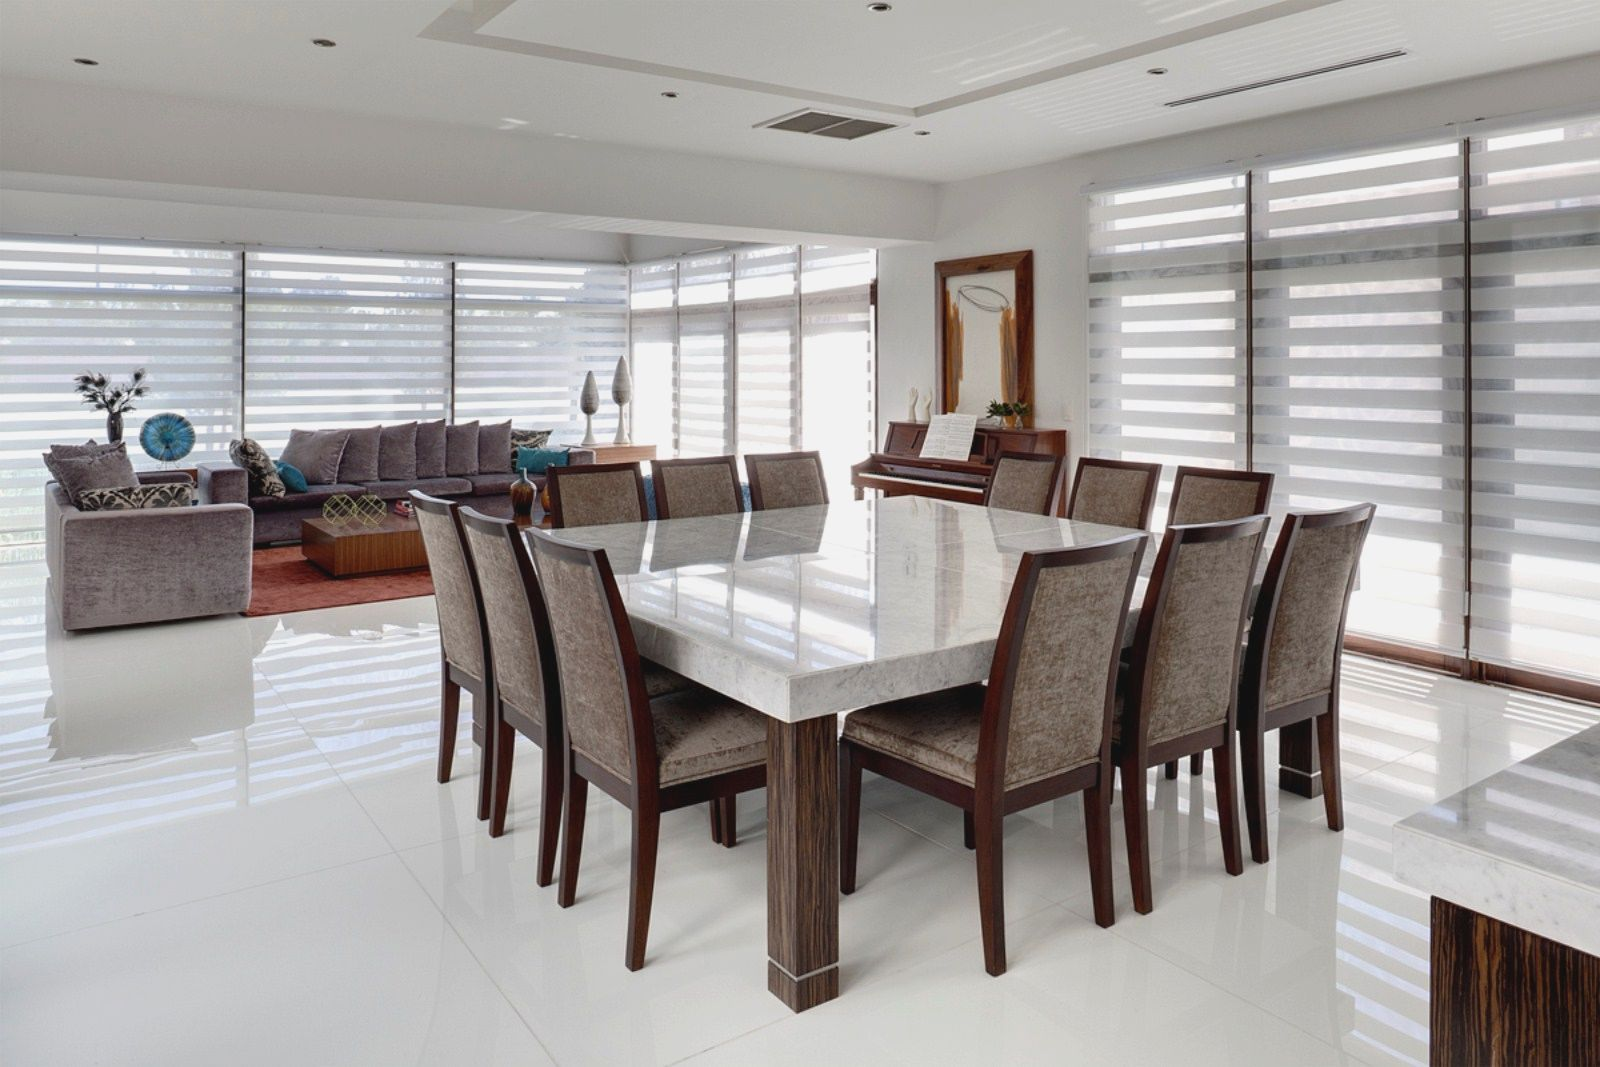 Large Dining Room Tables Seat 12 Dining Room Large Square Dining Room Table  Dimensions For 12 HD Wallpaper Frsh